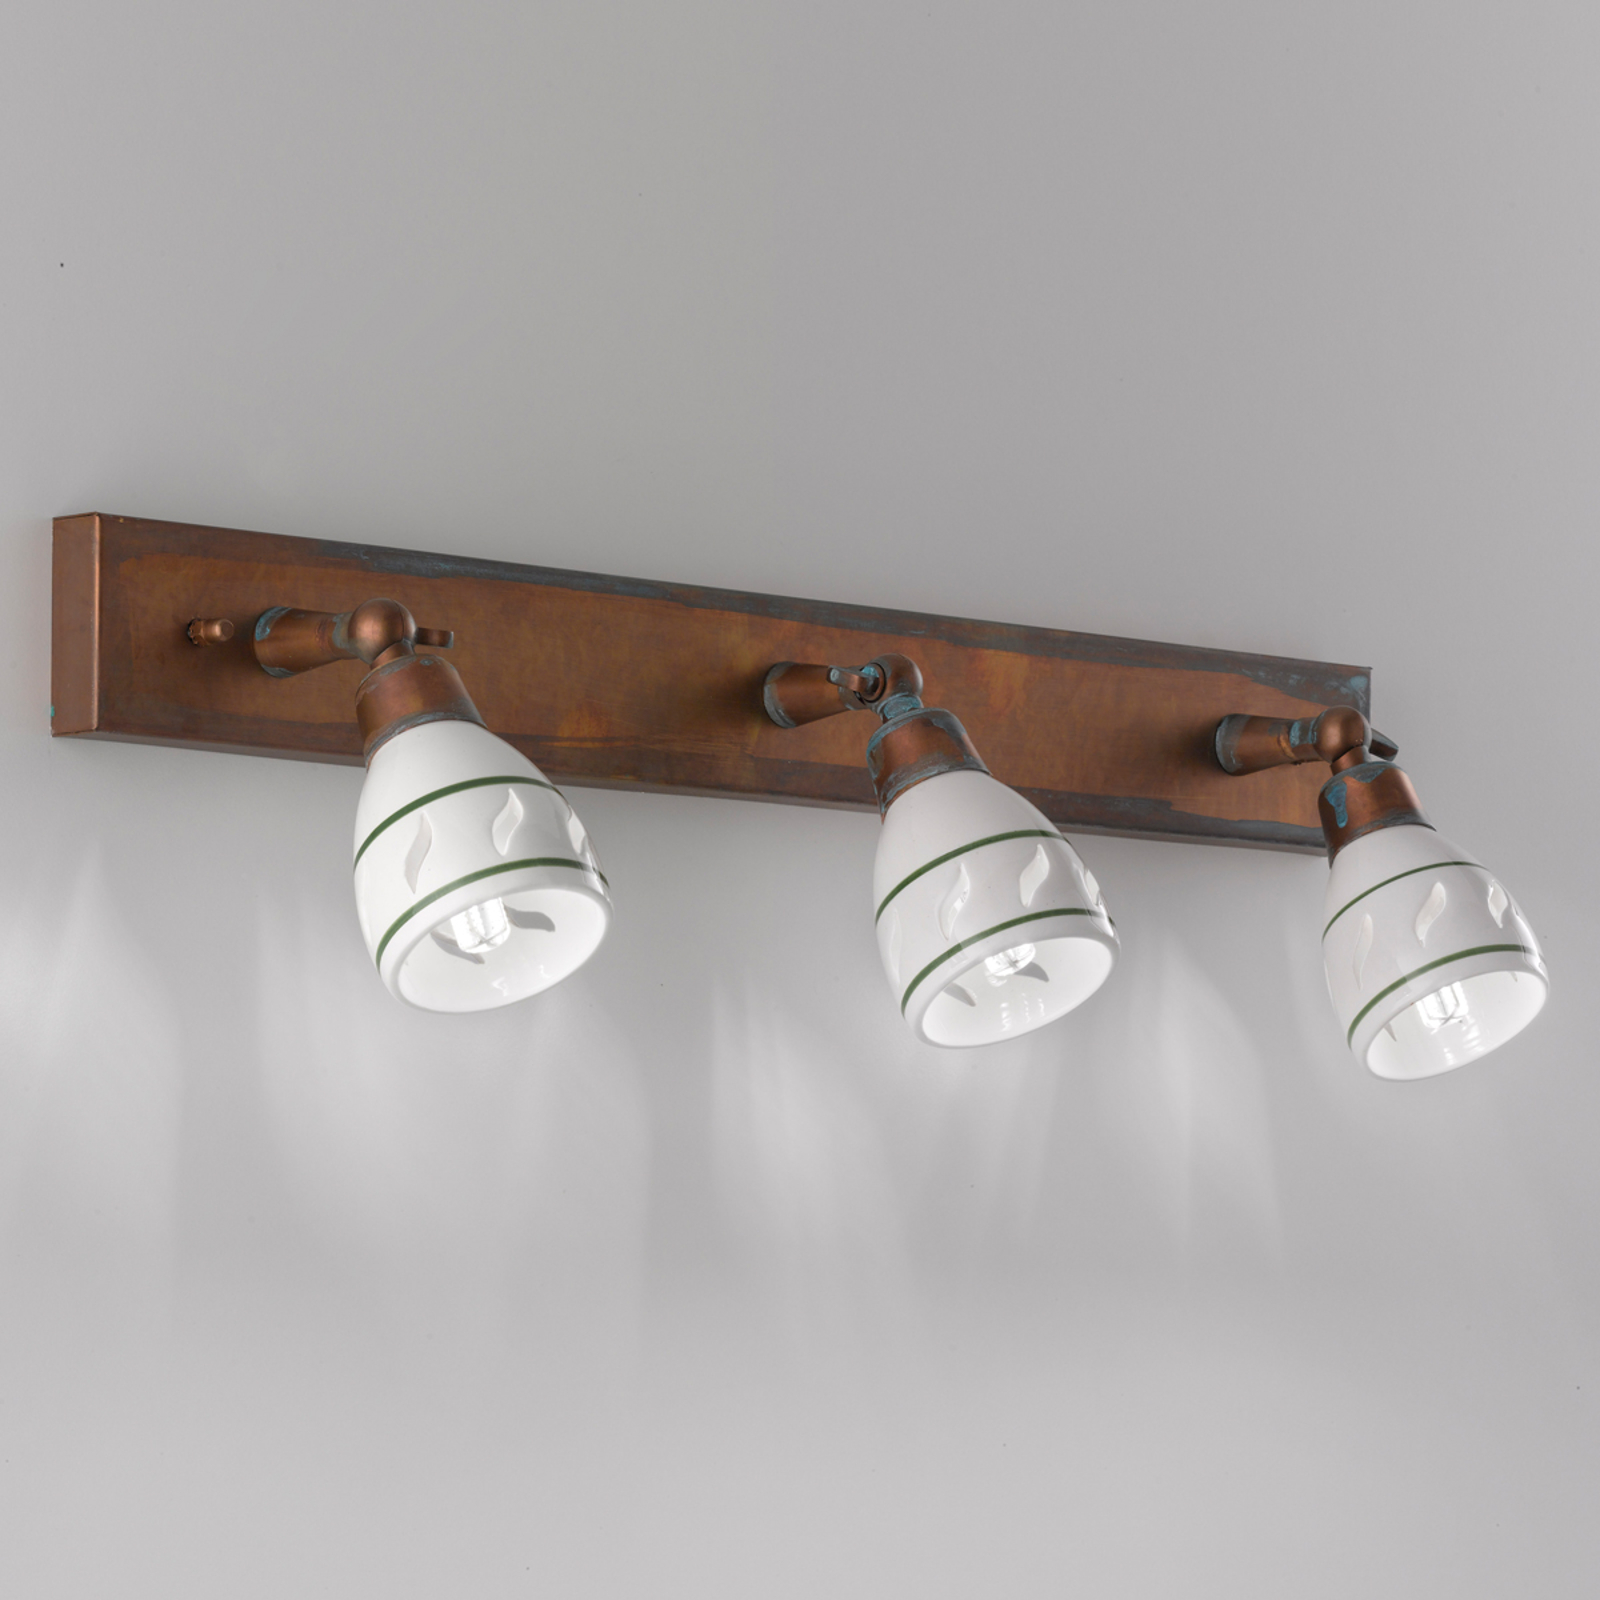 Bassano wall lamp with antique finish_2008276_1